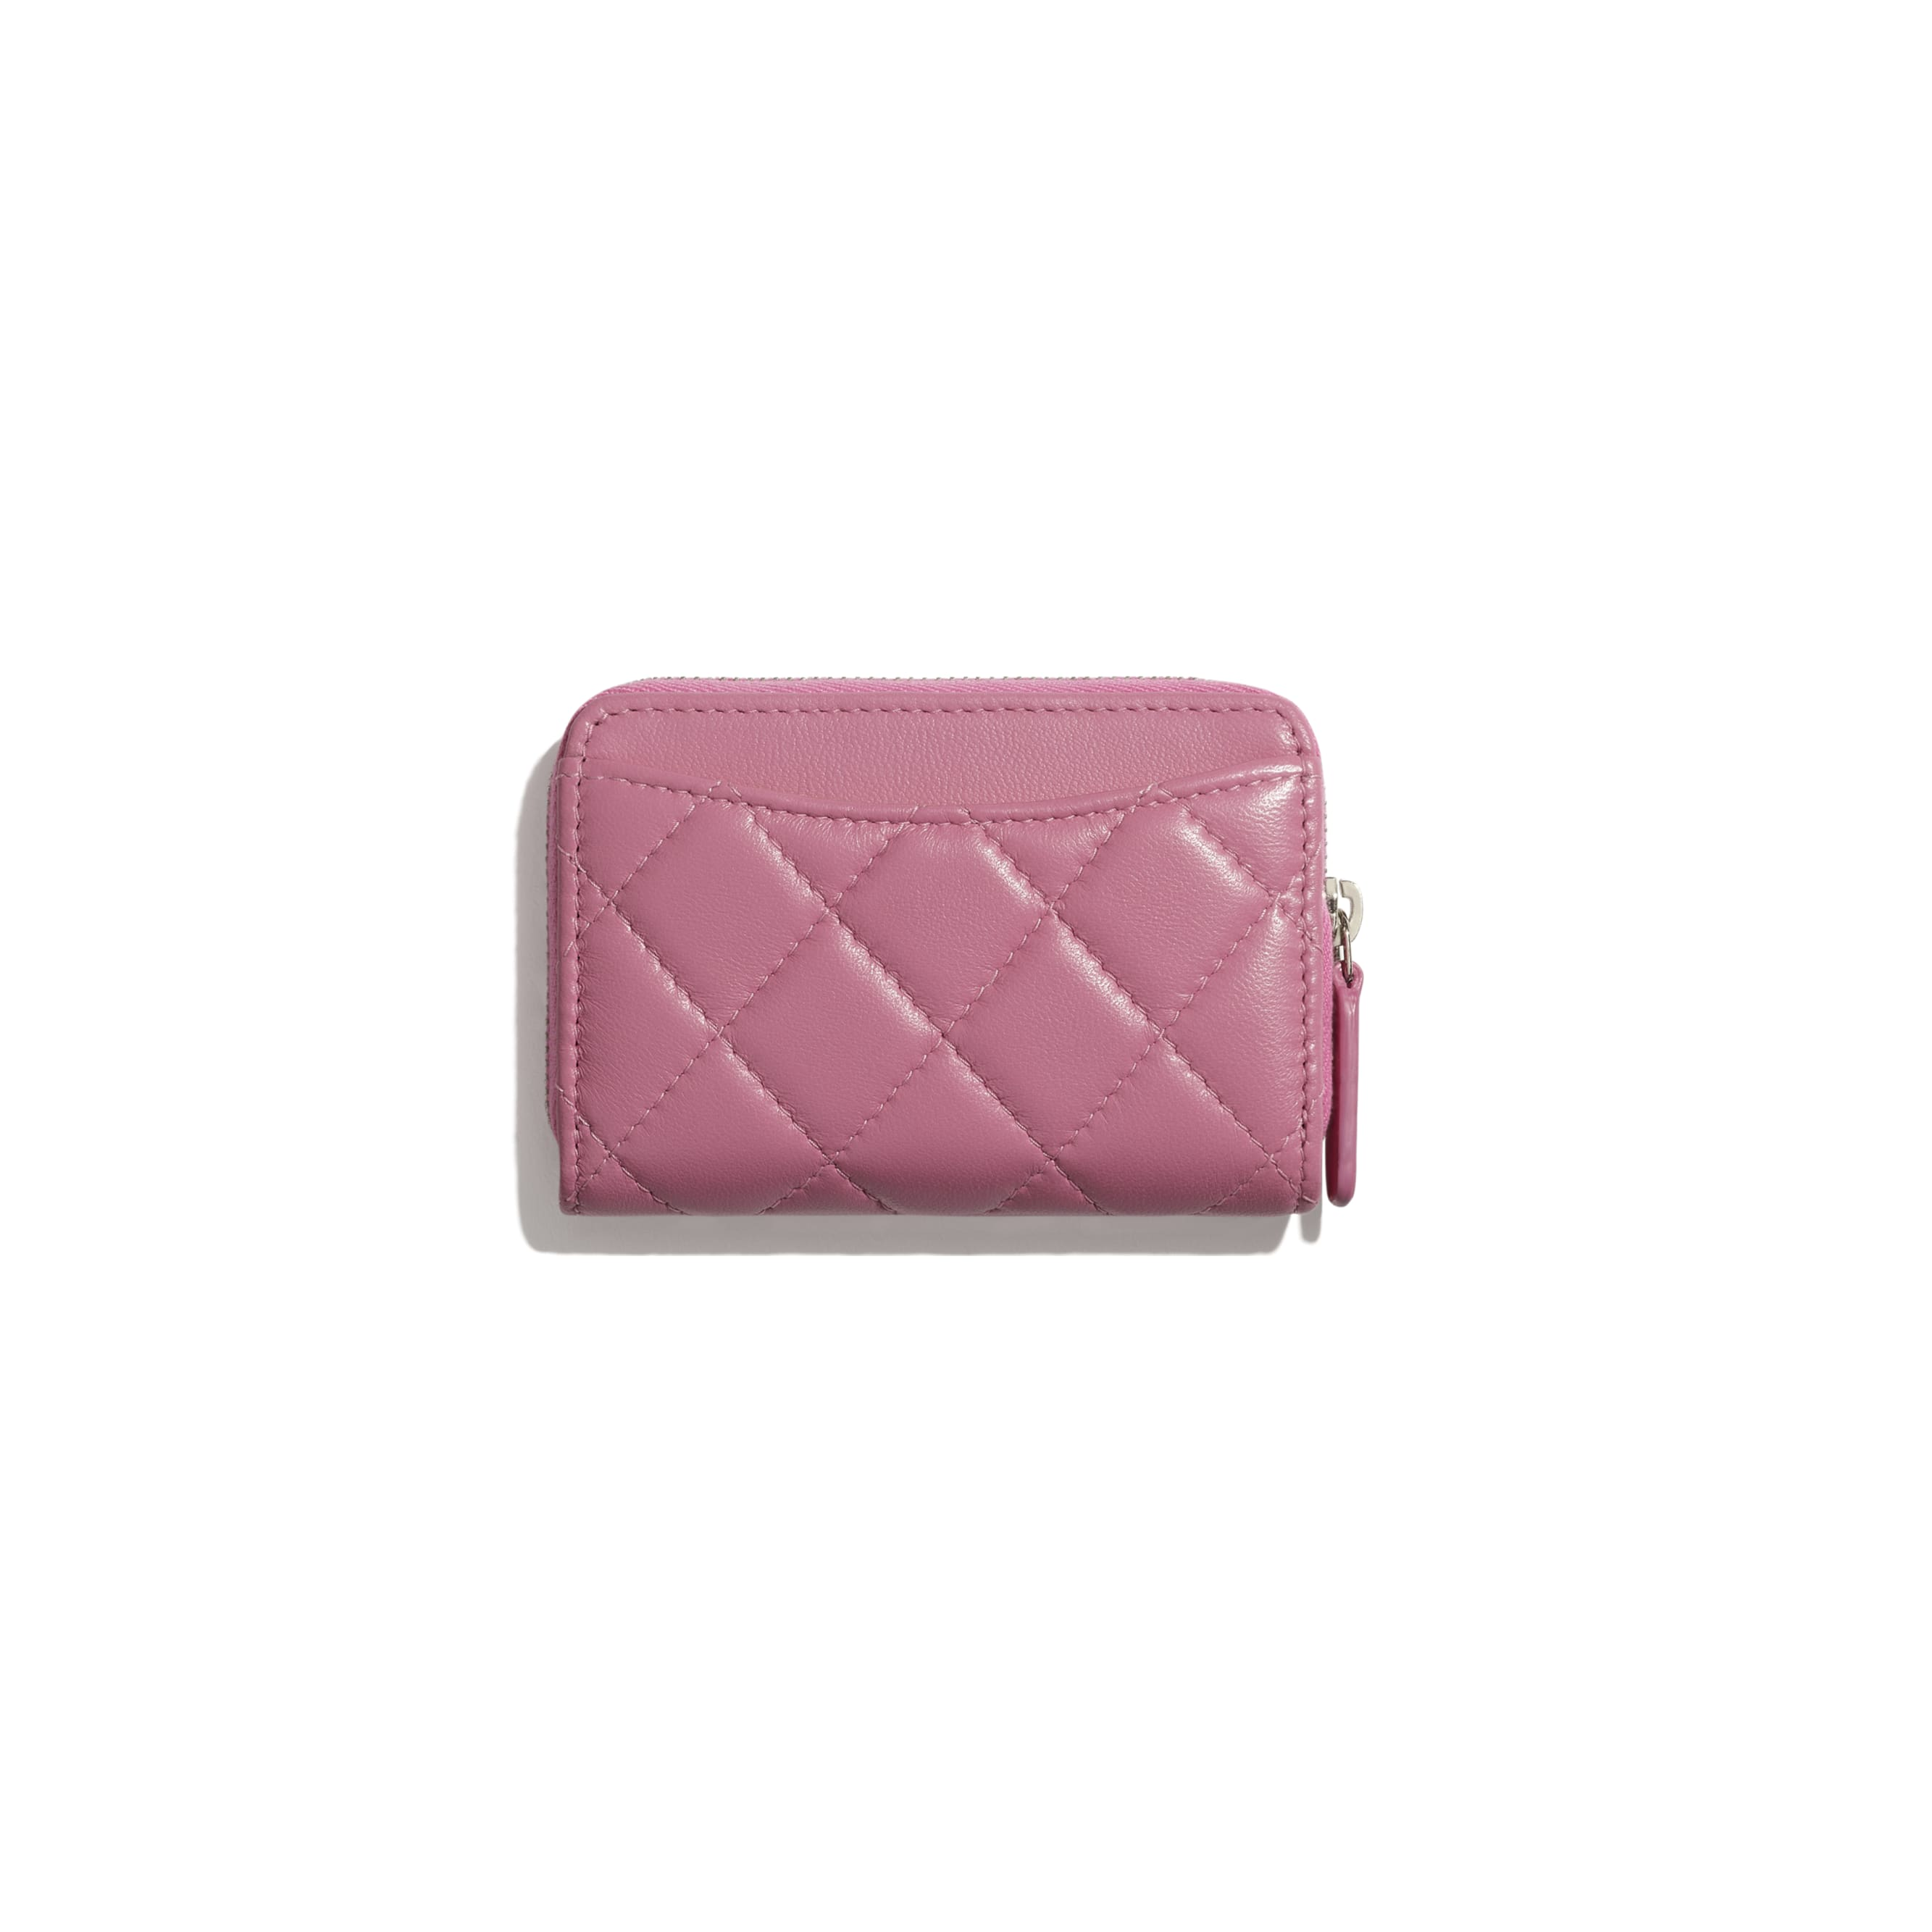 Classic Zipped Coin Purse - Pink - Lambskin & Rainbow Metal - CHANEL - Alternative view - see standard sized version